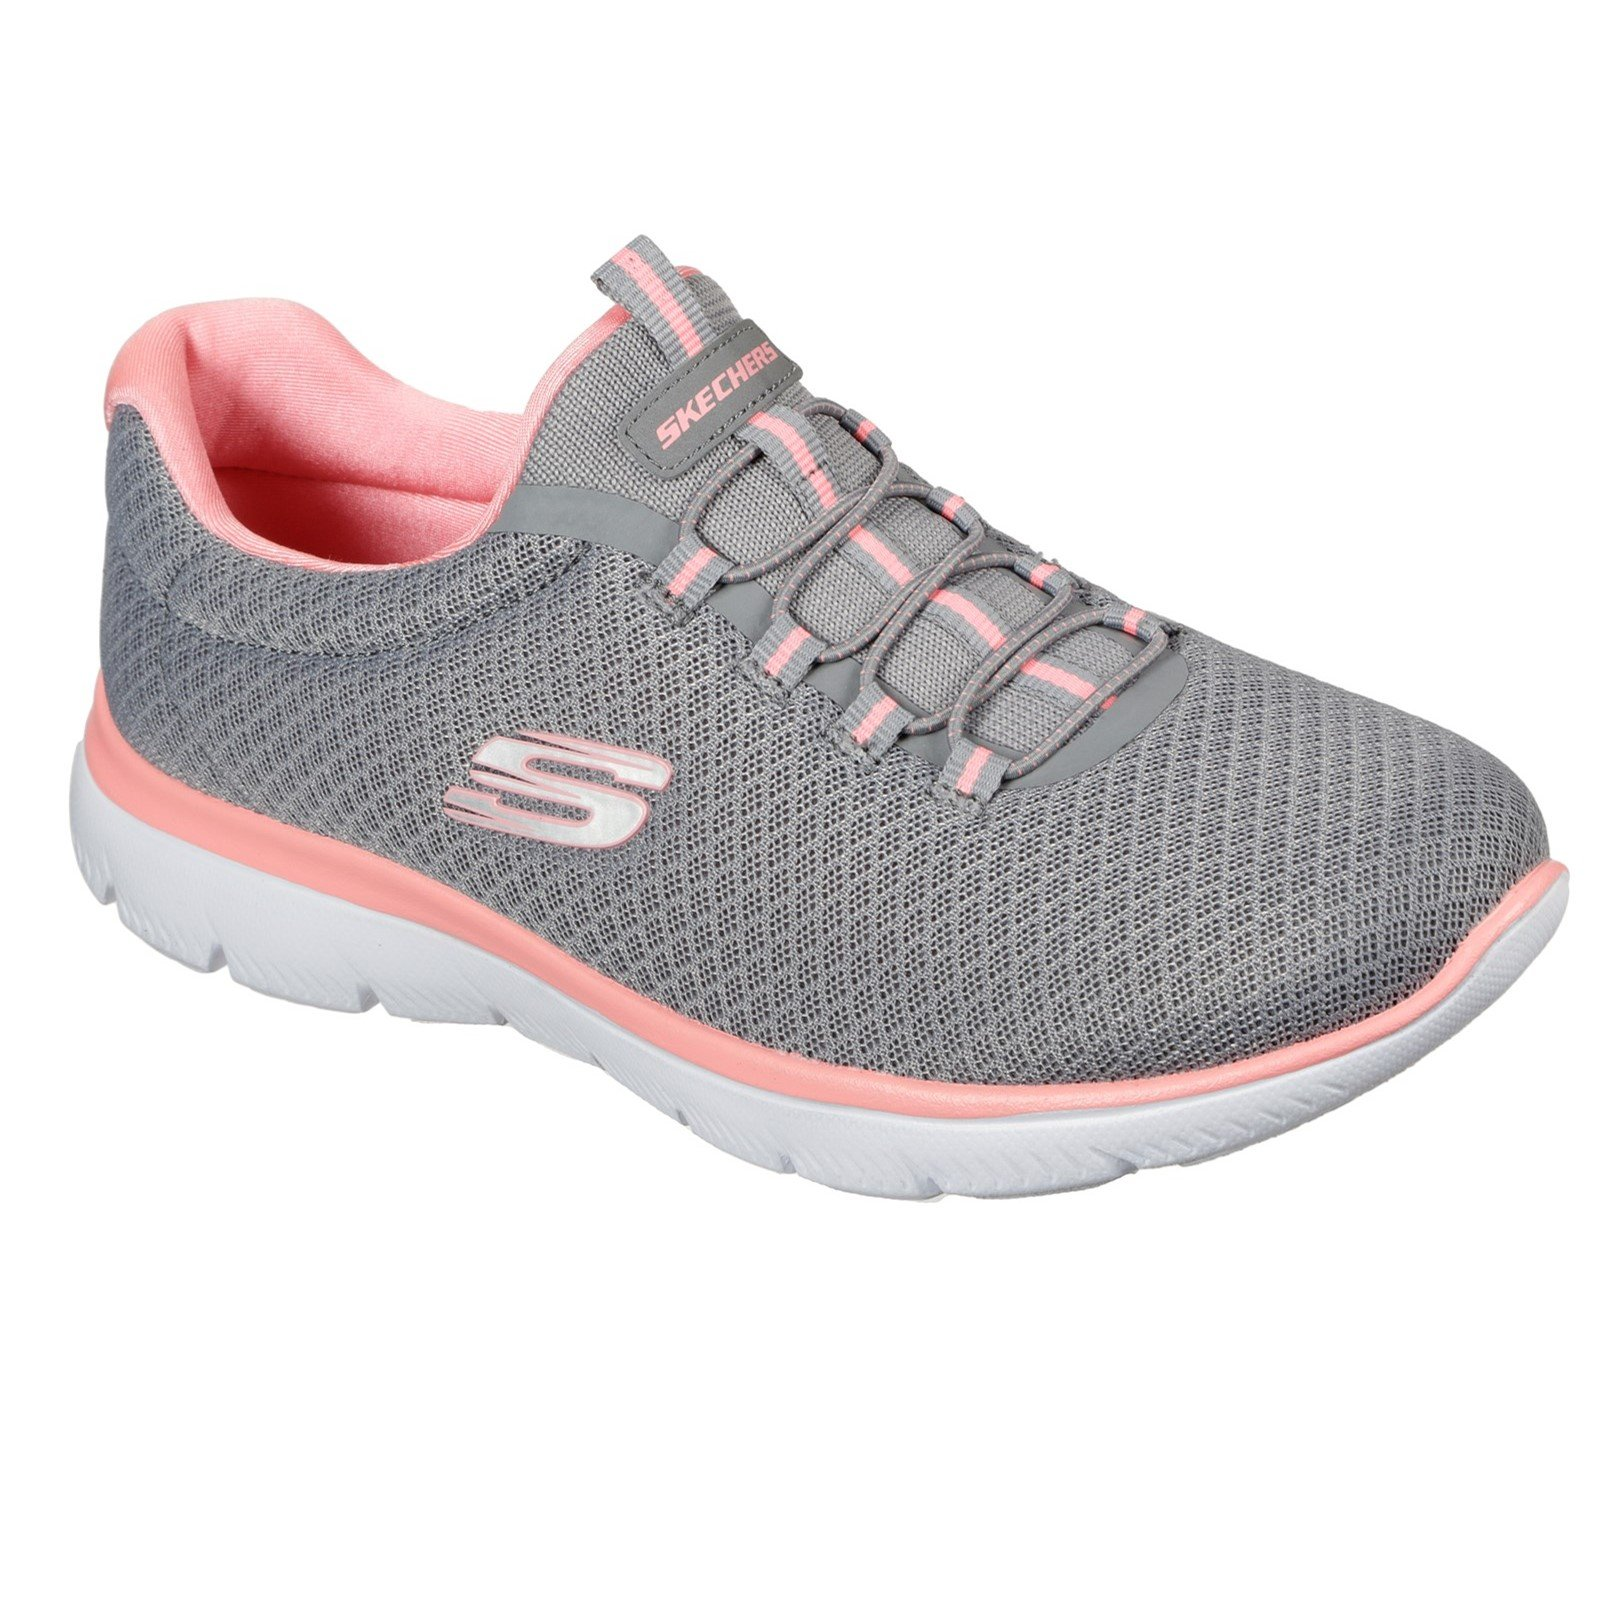 Skechers Women's Summits Slip On Trainer Various Colours 30708 - Grey/Pink 7